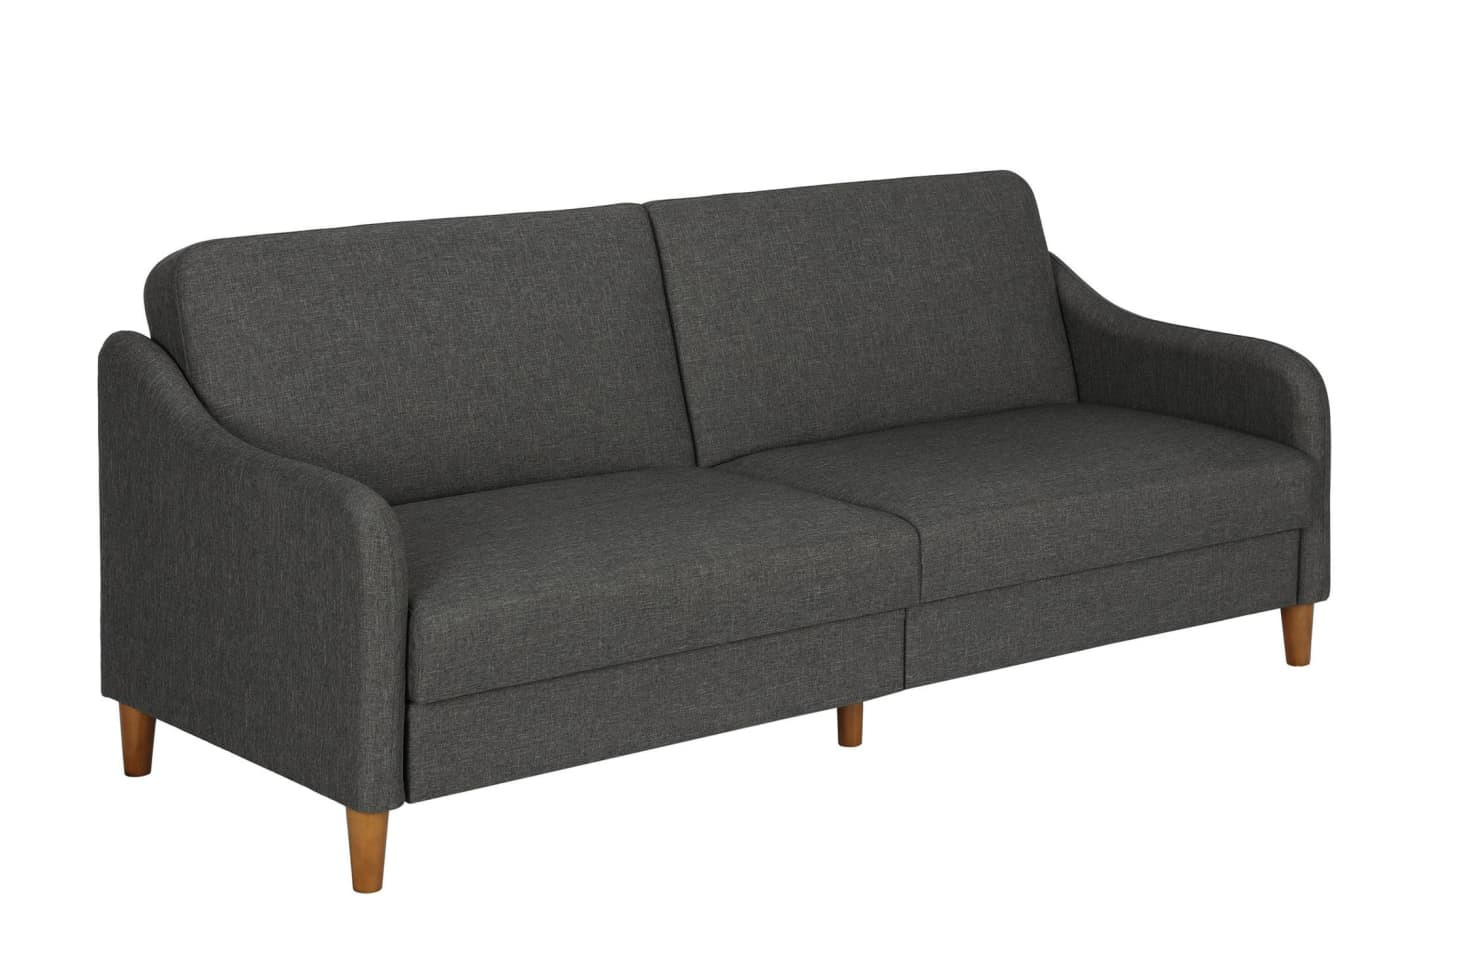 Best Sofas Under $500 - Cheap Comfortable Couches ...